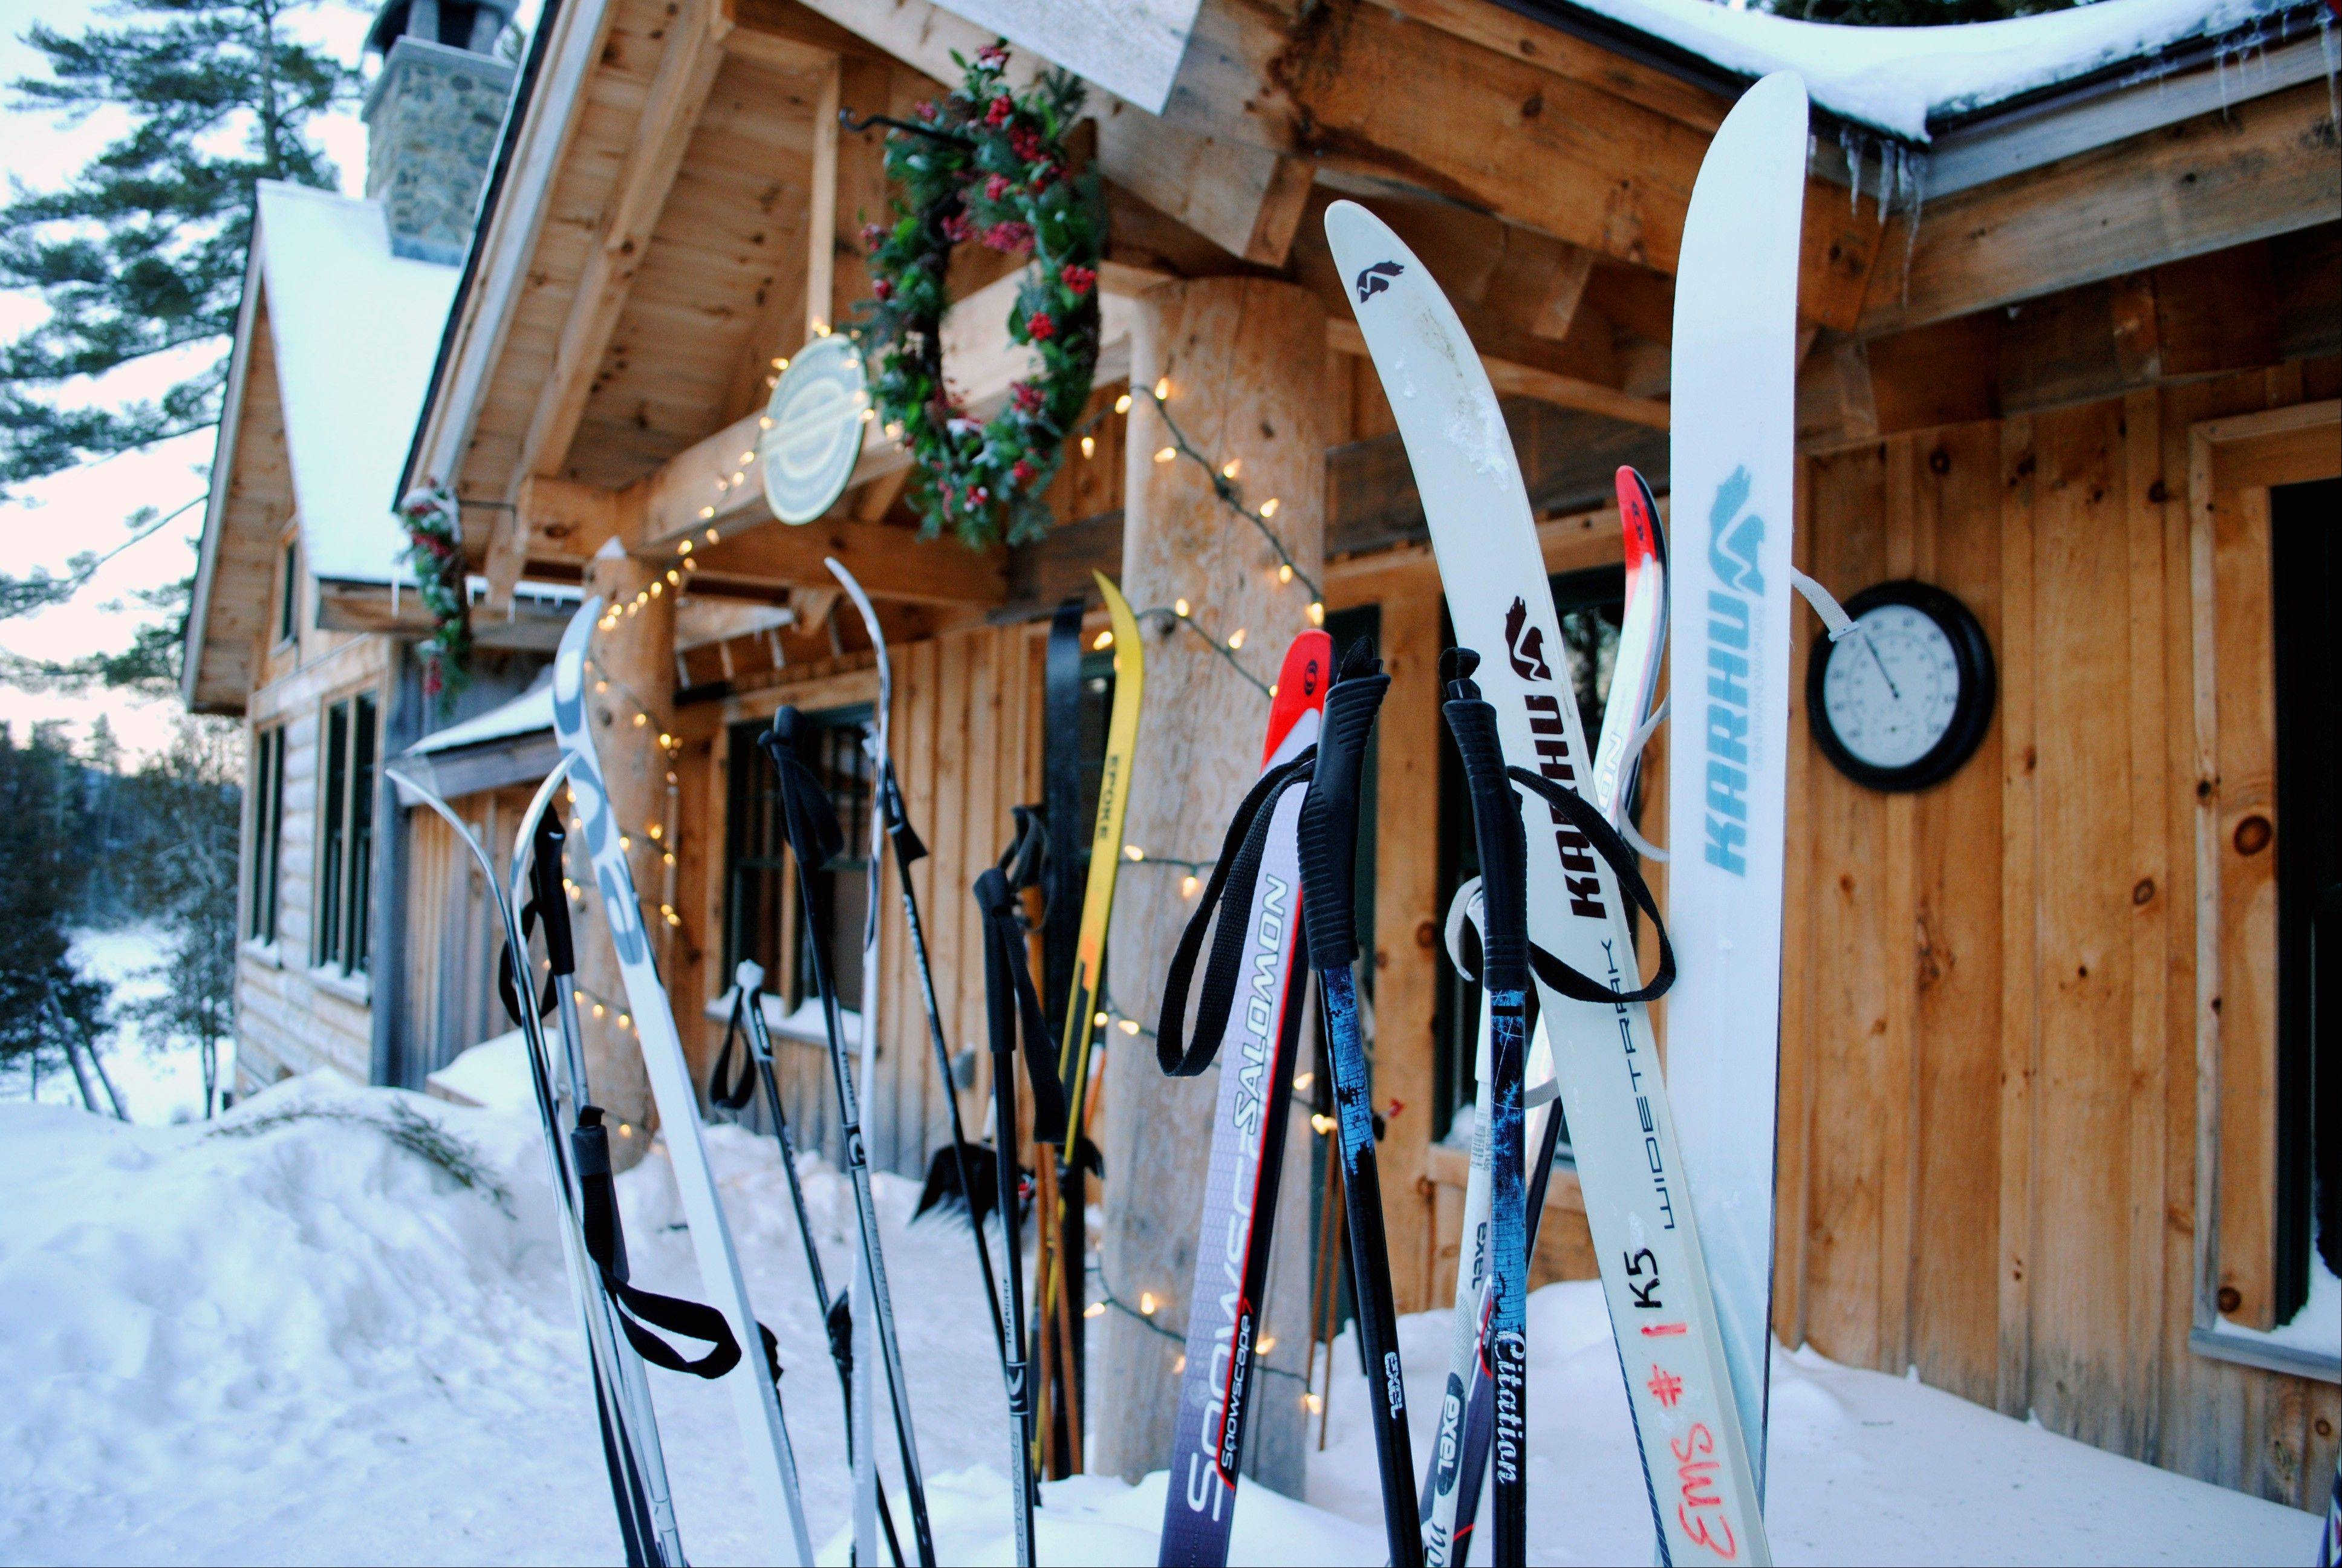 This December 2012 photo shows cross-country skis left by guests outside the Appalachian Mountain Club�s Gorman Chairback Lodge, a backcountry wilderness lodge near Greenville, Maine. In winter, visitors can reach the lodges and cabins only by cross-country skiing in.